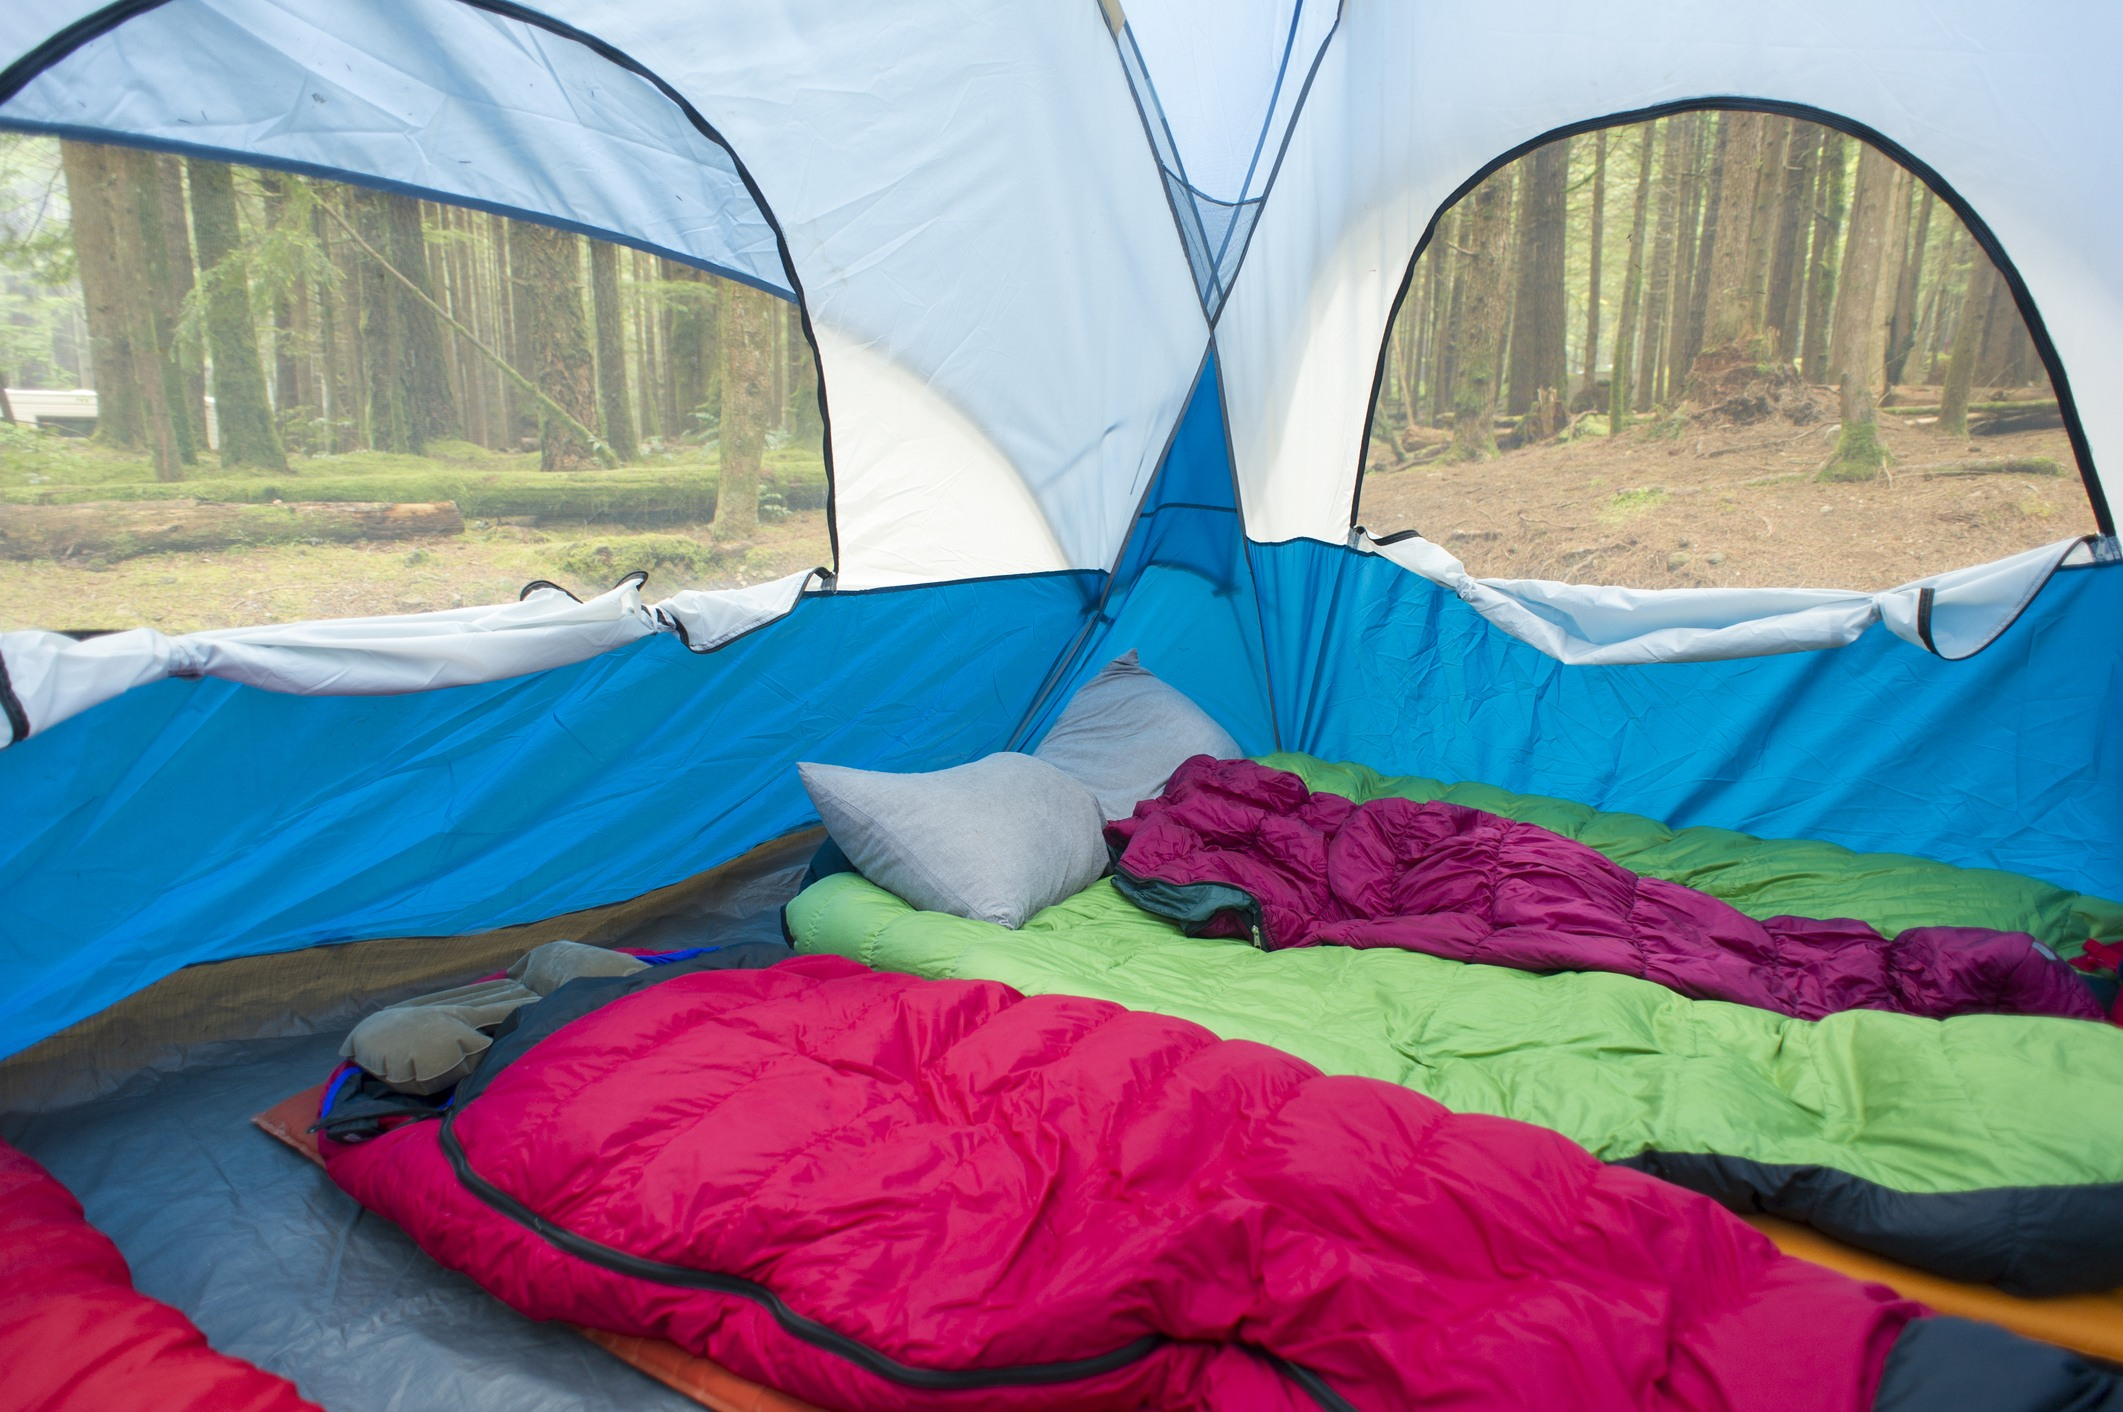 The interior of a tent with multiple sleeping bags